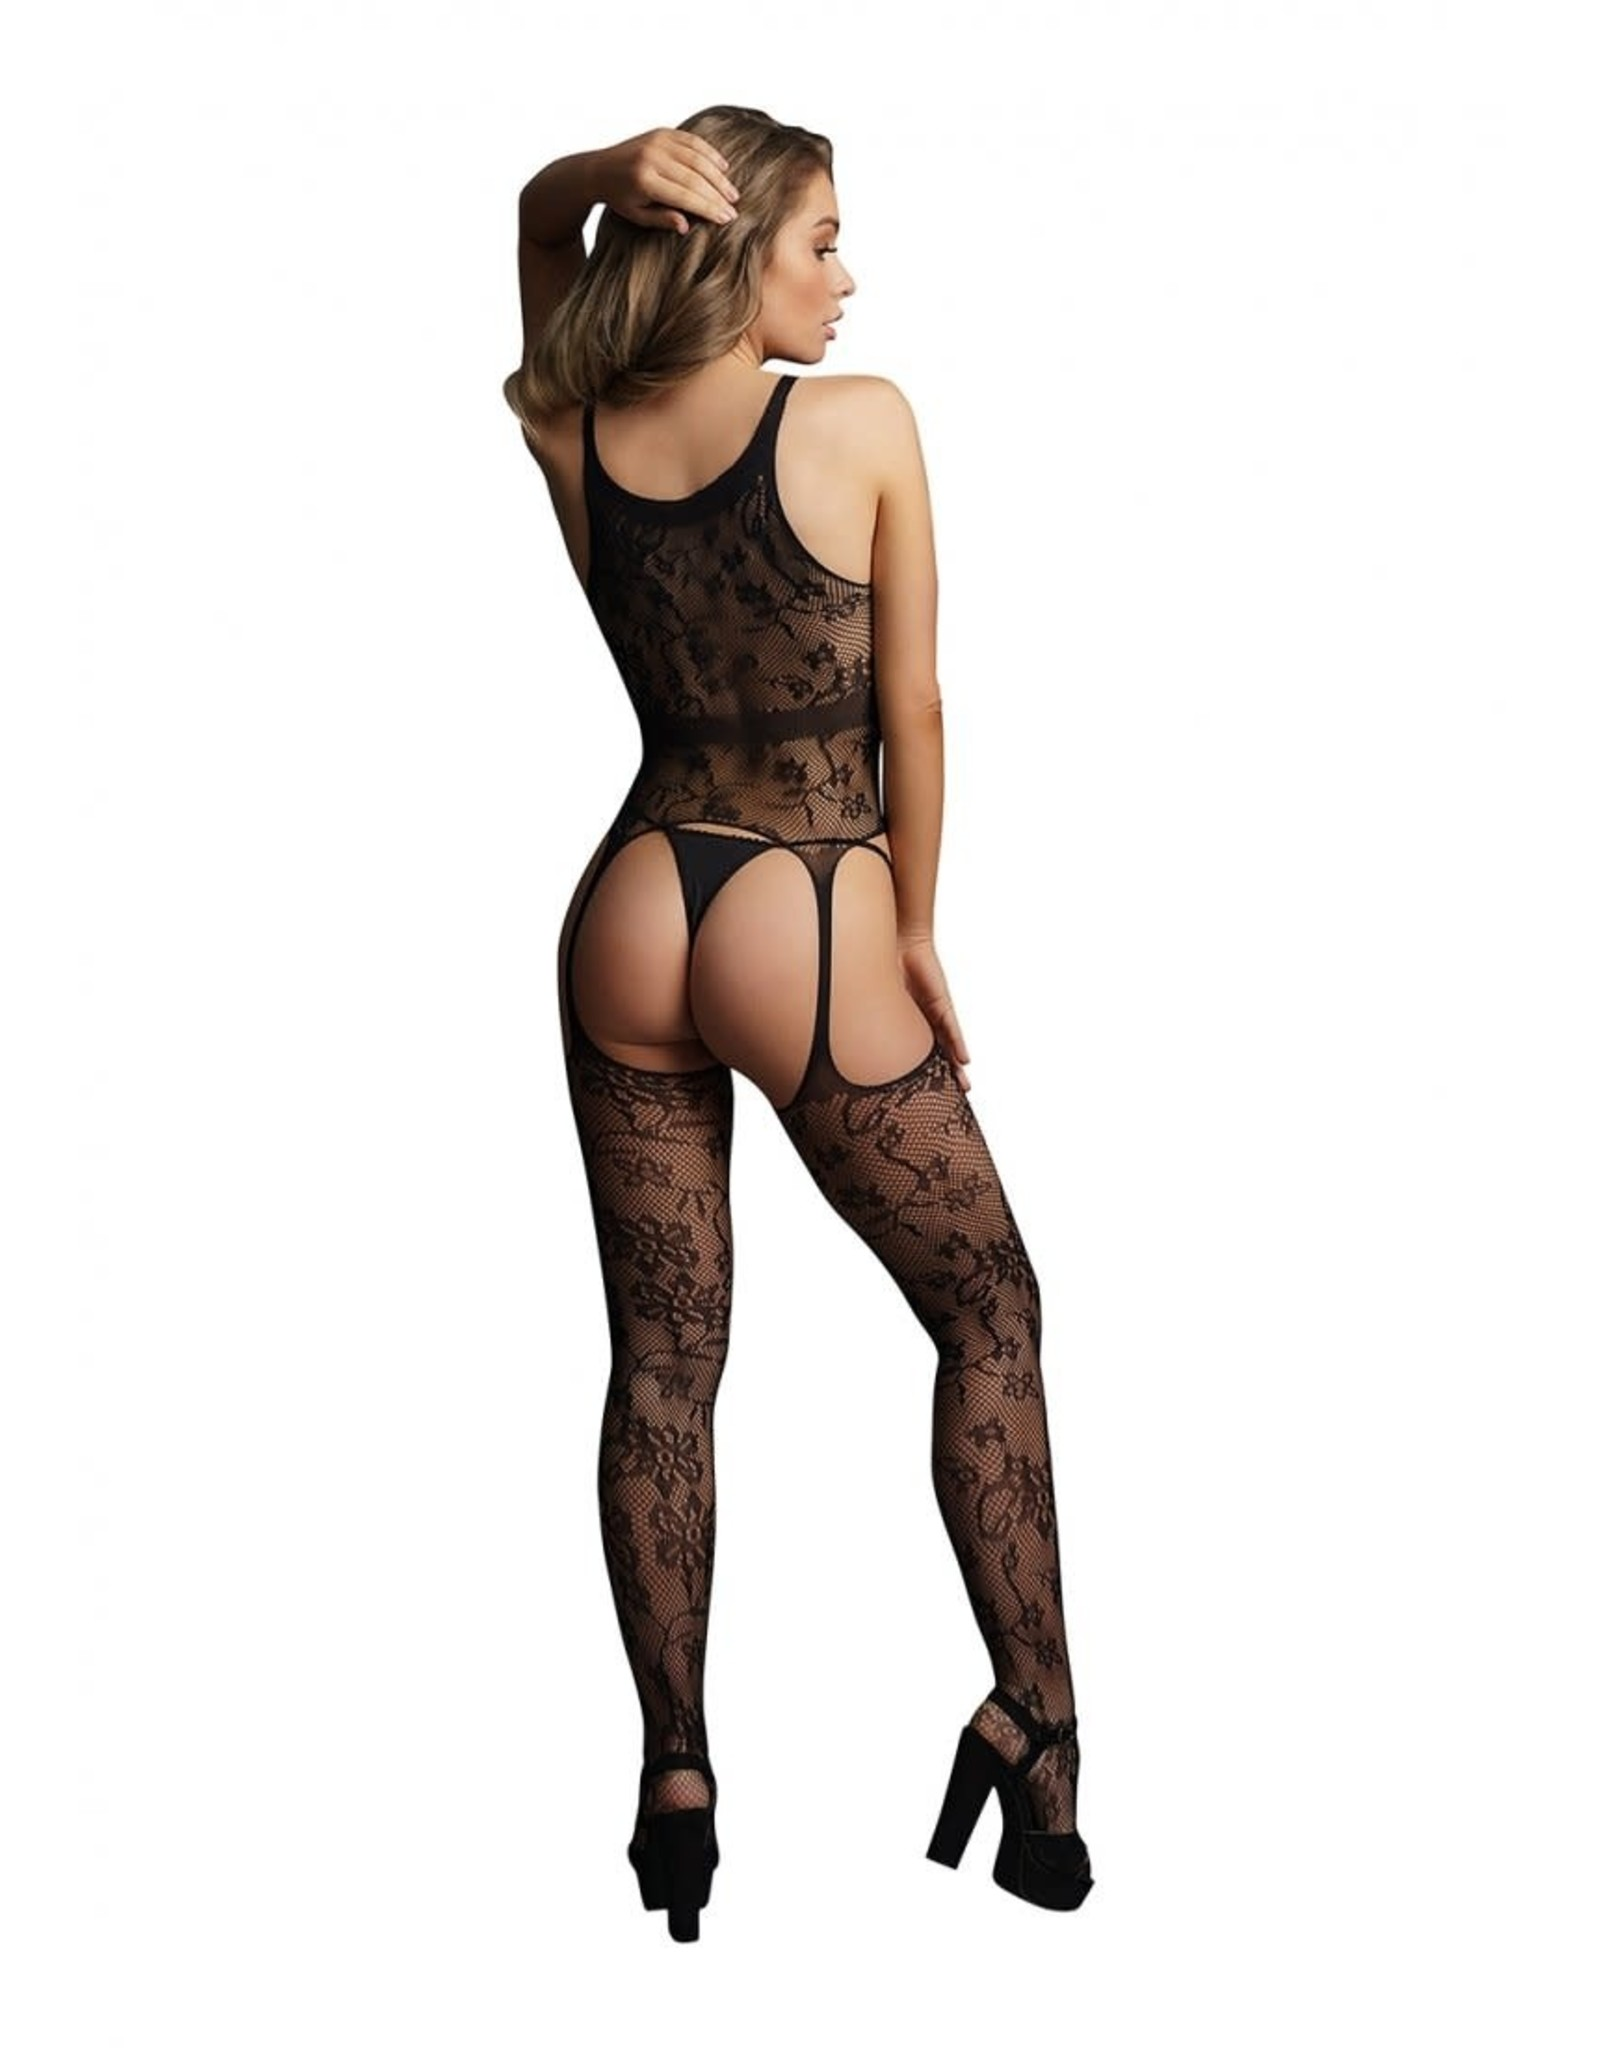 LE DESIR LINGERIE LACE SUSPENDER BODYSTOCKING WITH ROUND NECK - BLACK - O/S